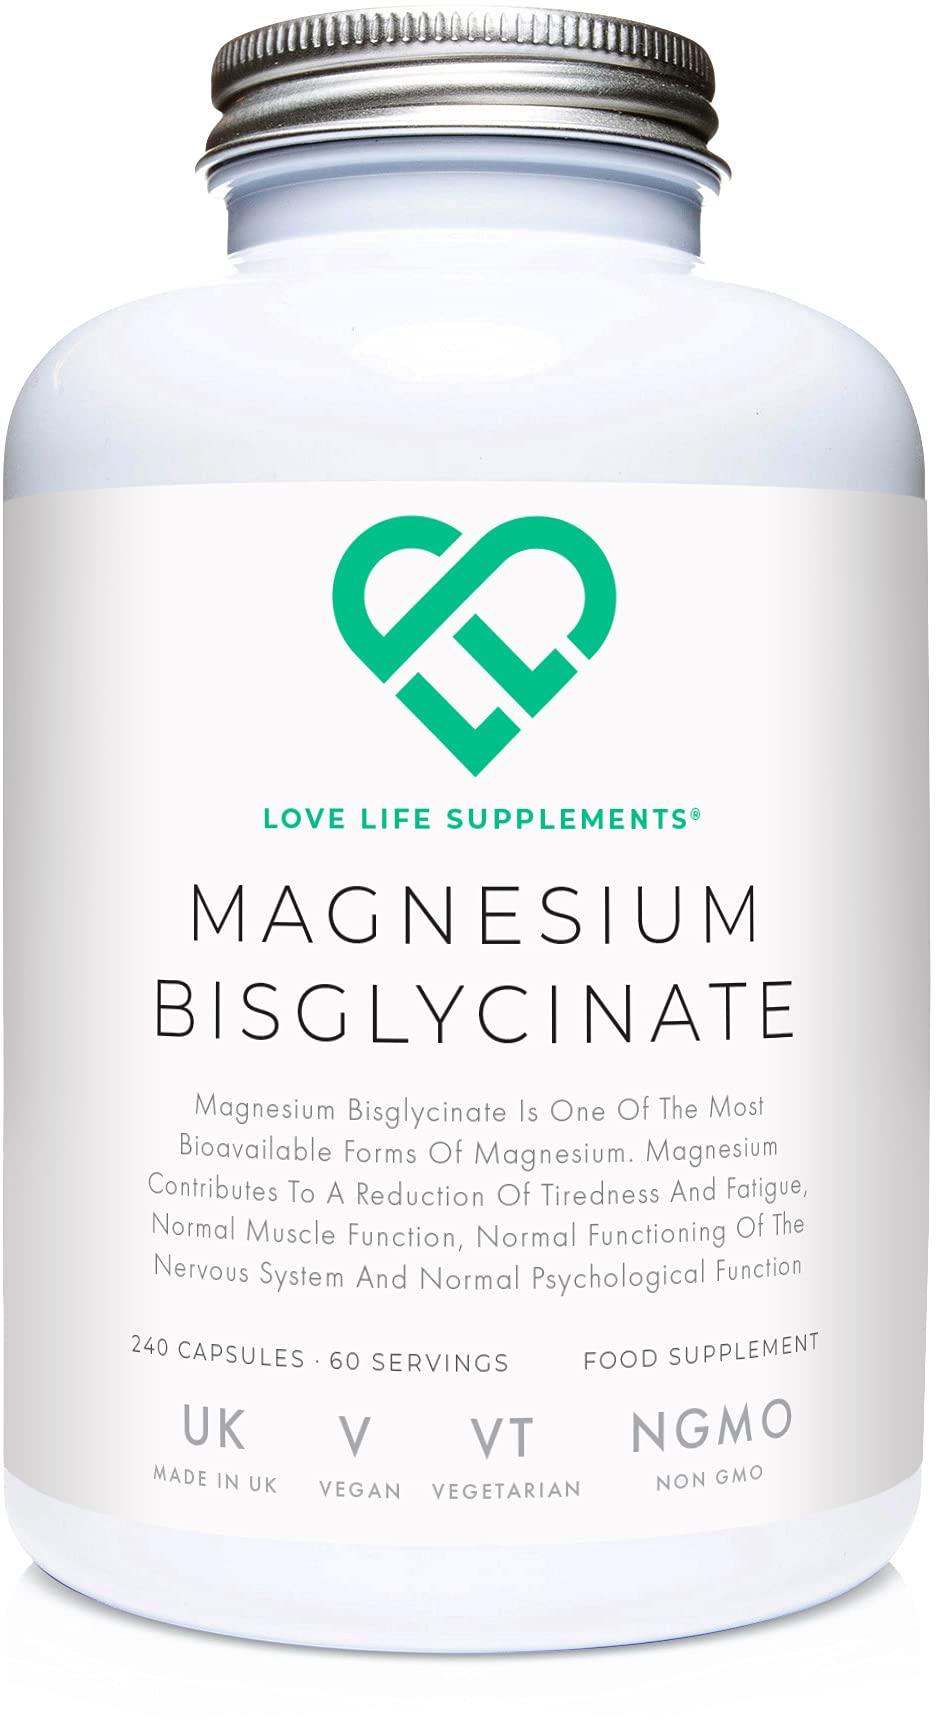 "LLS Magnesium Bisglycinate (Chelated) | Zero Bulking Agents | 2750mg (303mg Magnesium) | 240 Capsules / 60 Servings | Highly Bioavailable Form of Magnesium | Manufactured in the UK Under BRC Certification | Love Life Supplements - ""Live Healthy, Love Life."""